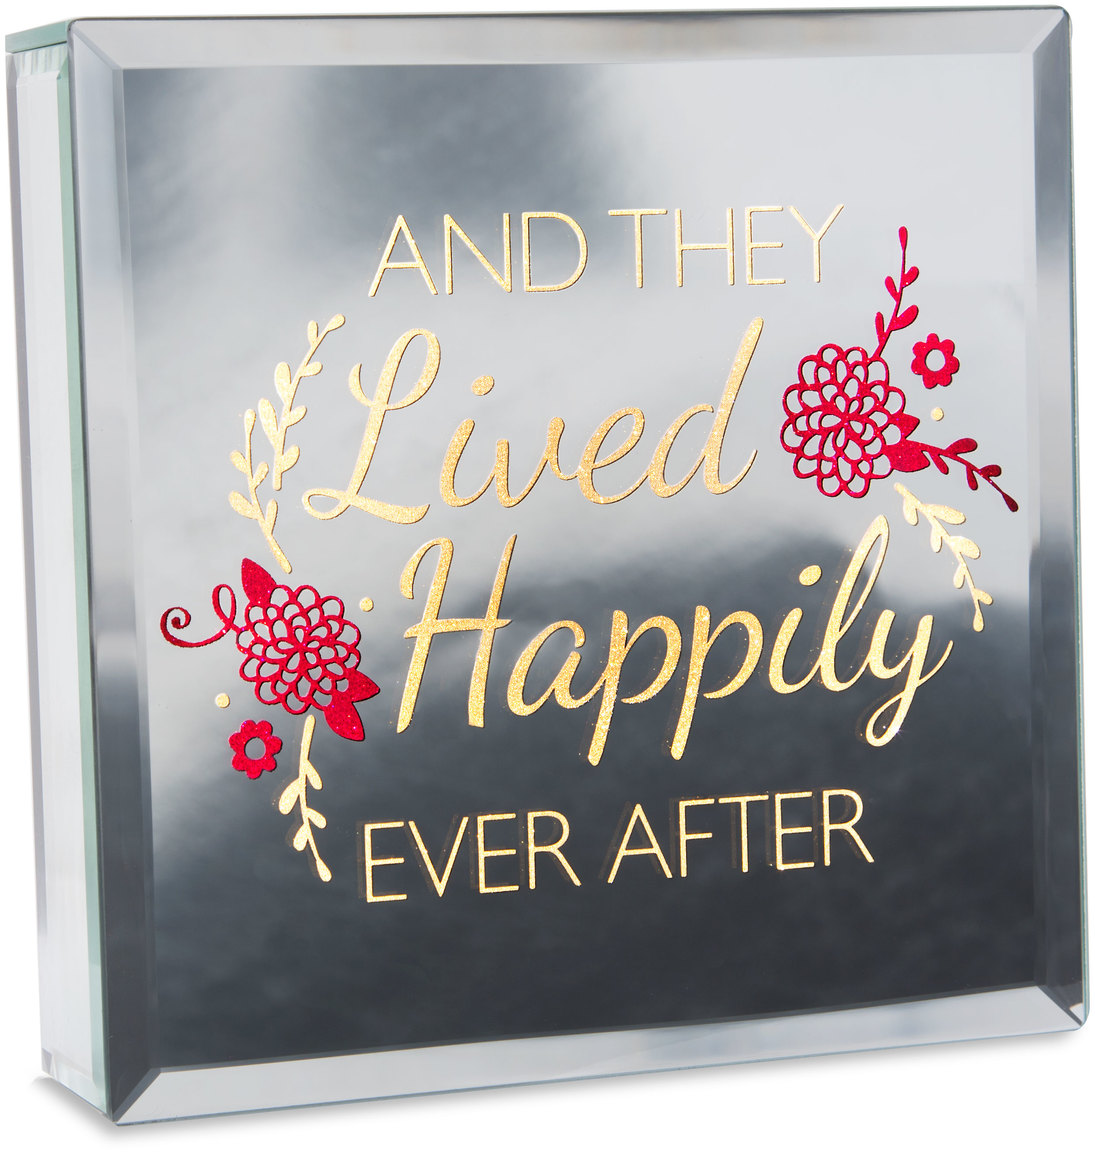 "Happily Ever After by Reflections of You - Happily Ever After - 6"" Lit-Mirrored Plaque"